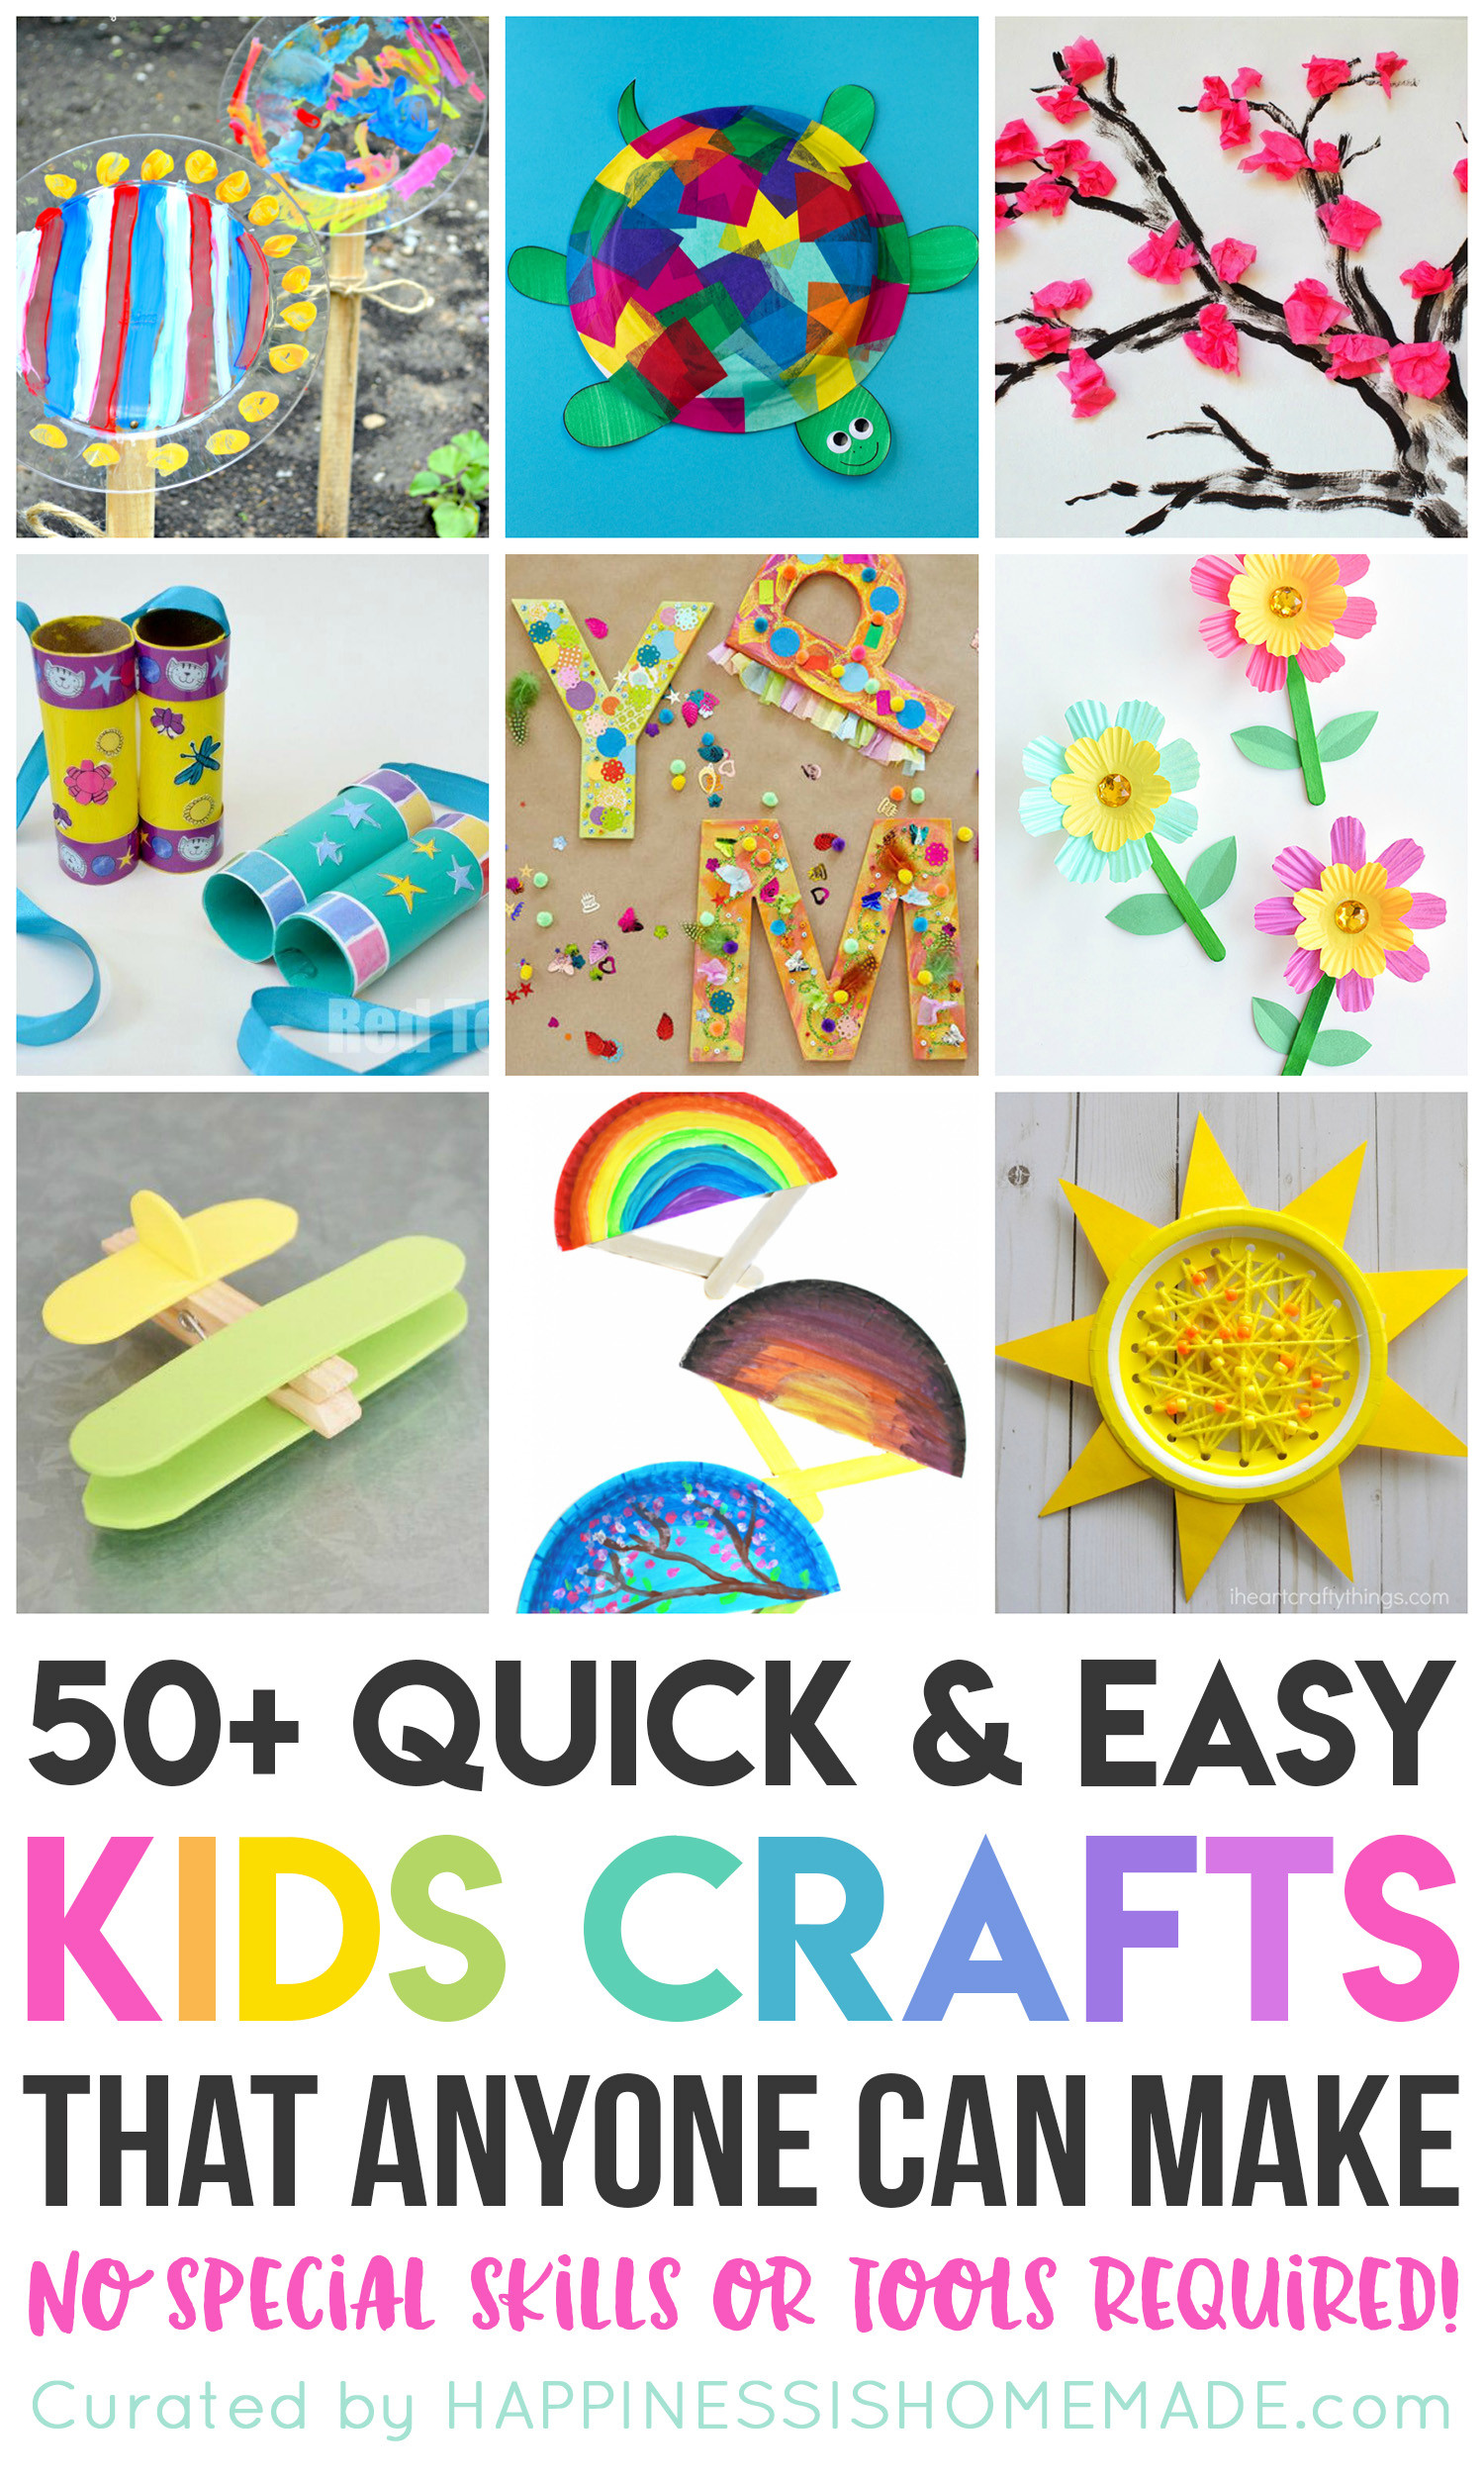 Best ideas about Art Crafts For Kids . Save or Pin Quick & Easy Halloween Crafts for Kids Happiness is Homemade Now.